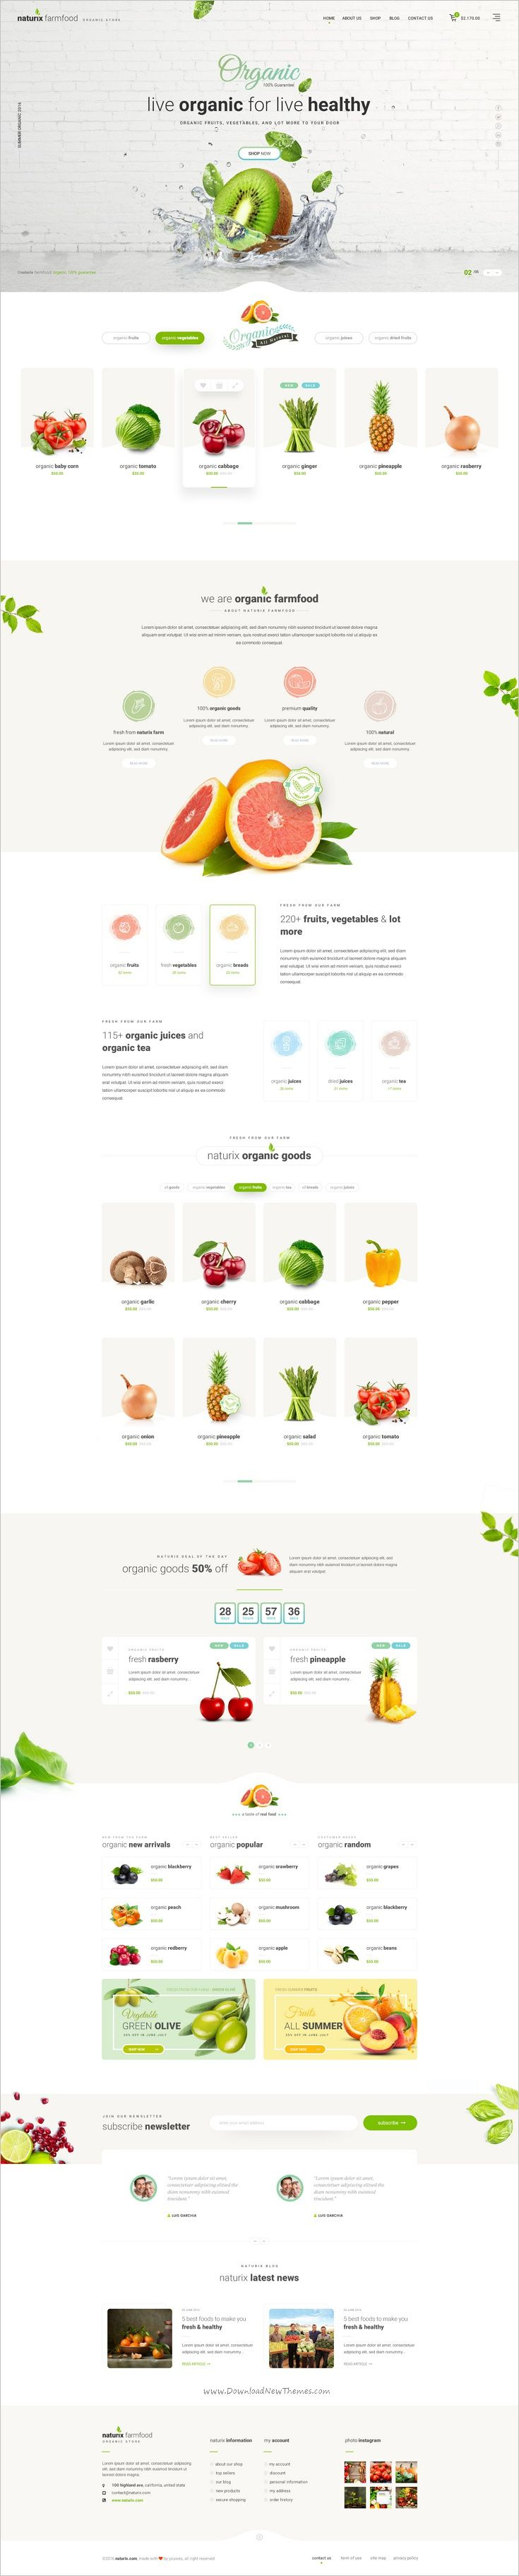 Naturix is a modern and elegant design #Photoshop template for #webdev stunning #organic store eCommerce websites download now➩ https://themeforest.net/item/naturix-organic-store-psd-template/19184061?ref=Datasata